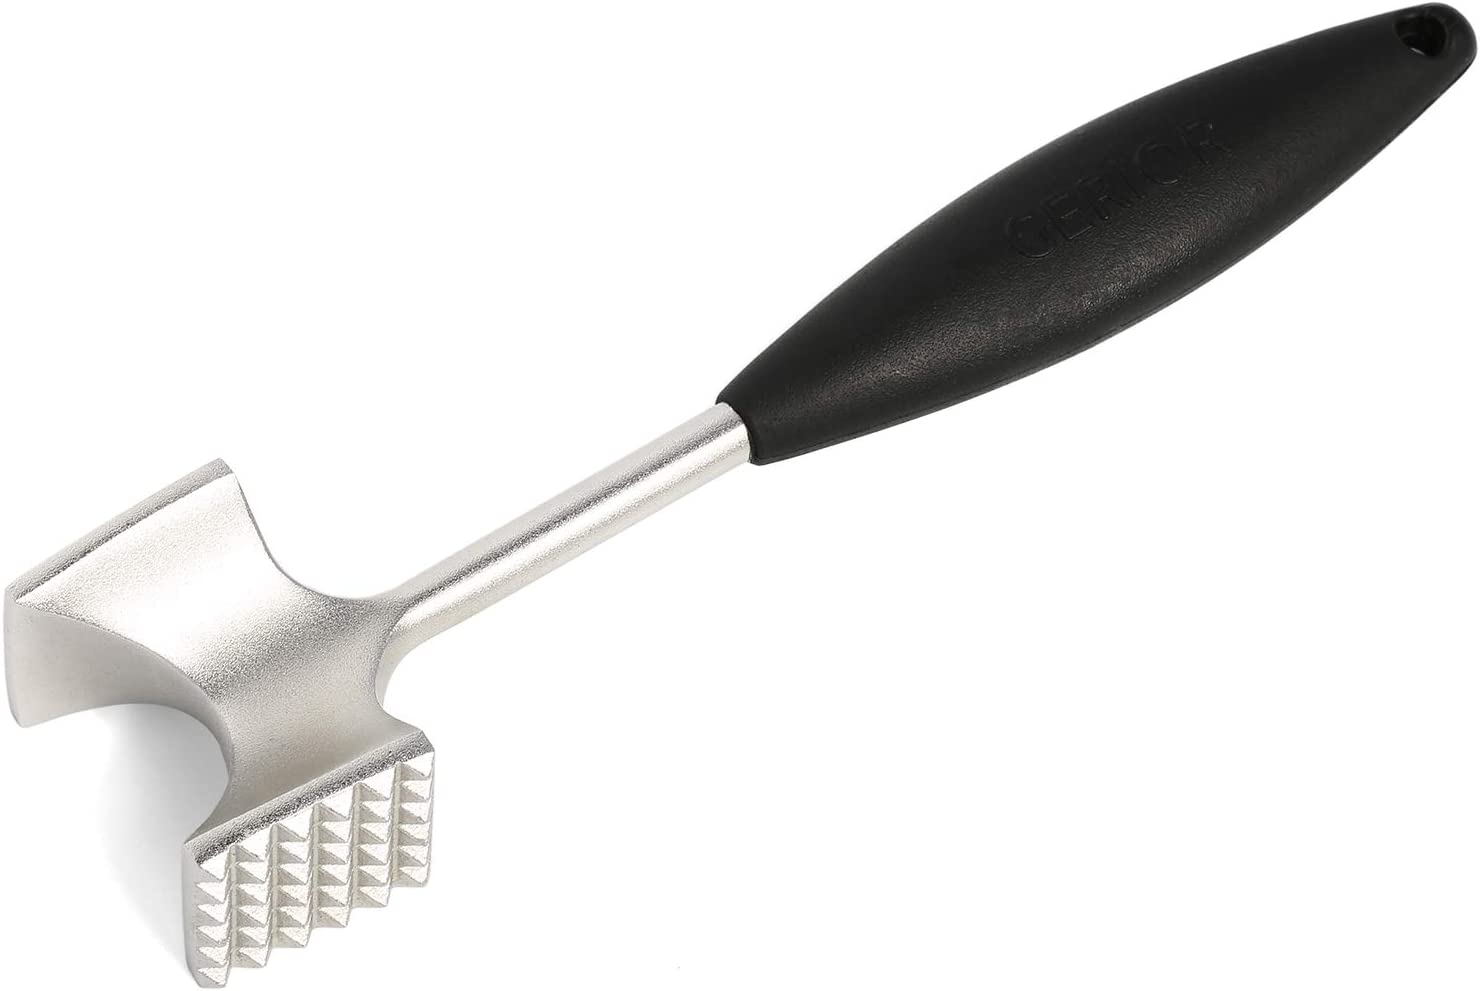 Cast Stainless Steel Meat Tenderizer - Heavy Duty Dishwasher Safe Hammer Mallet Tool & Chicken Pounder